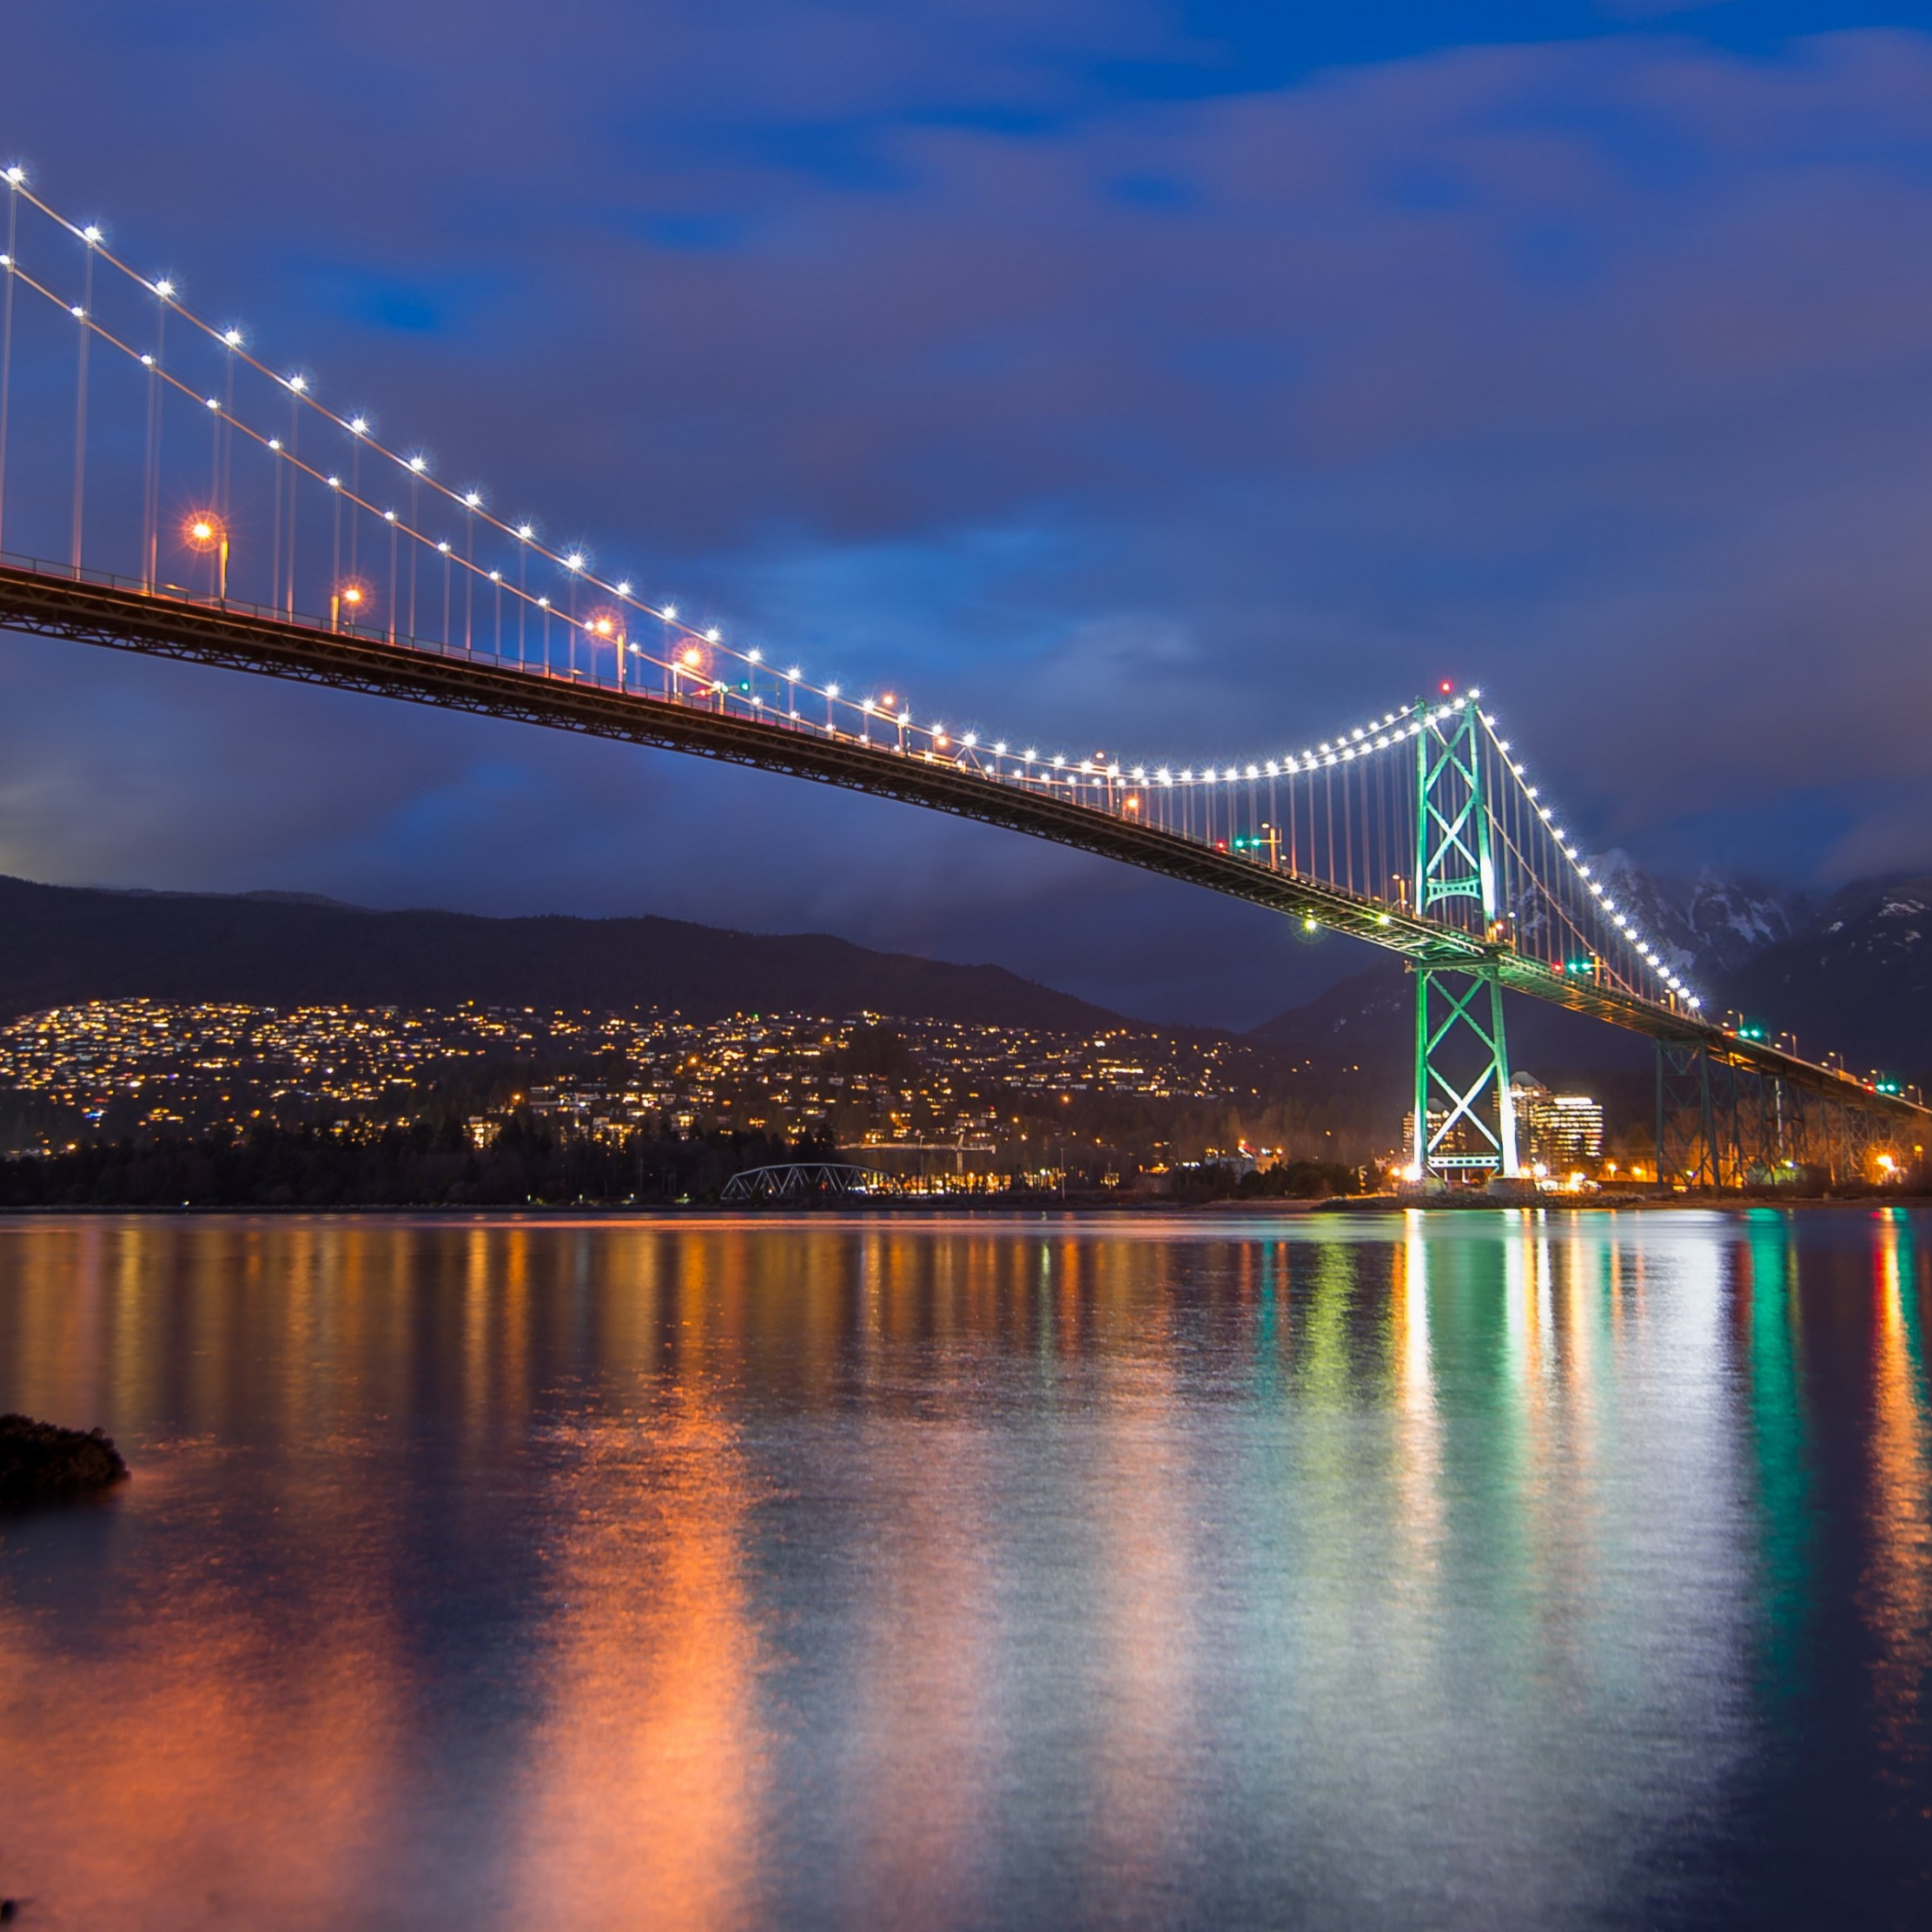 Lions Gate Bridge, Burrard Inlet, British Columbia | 2224x2224 wallpaper